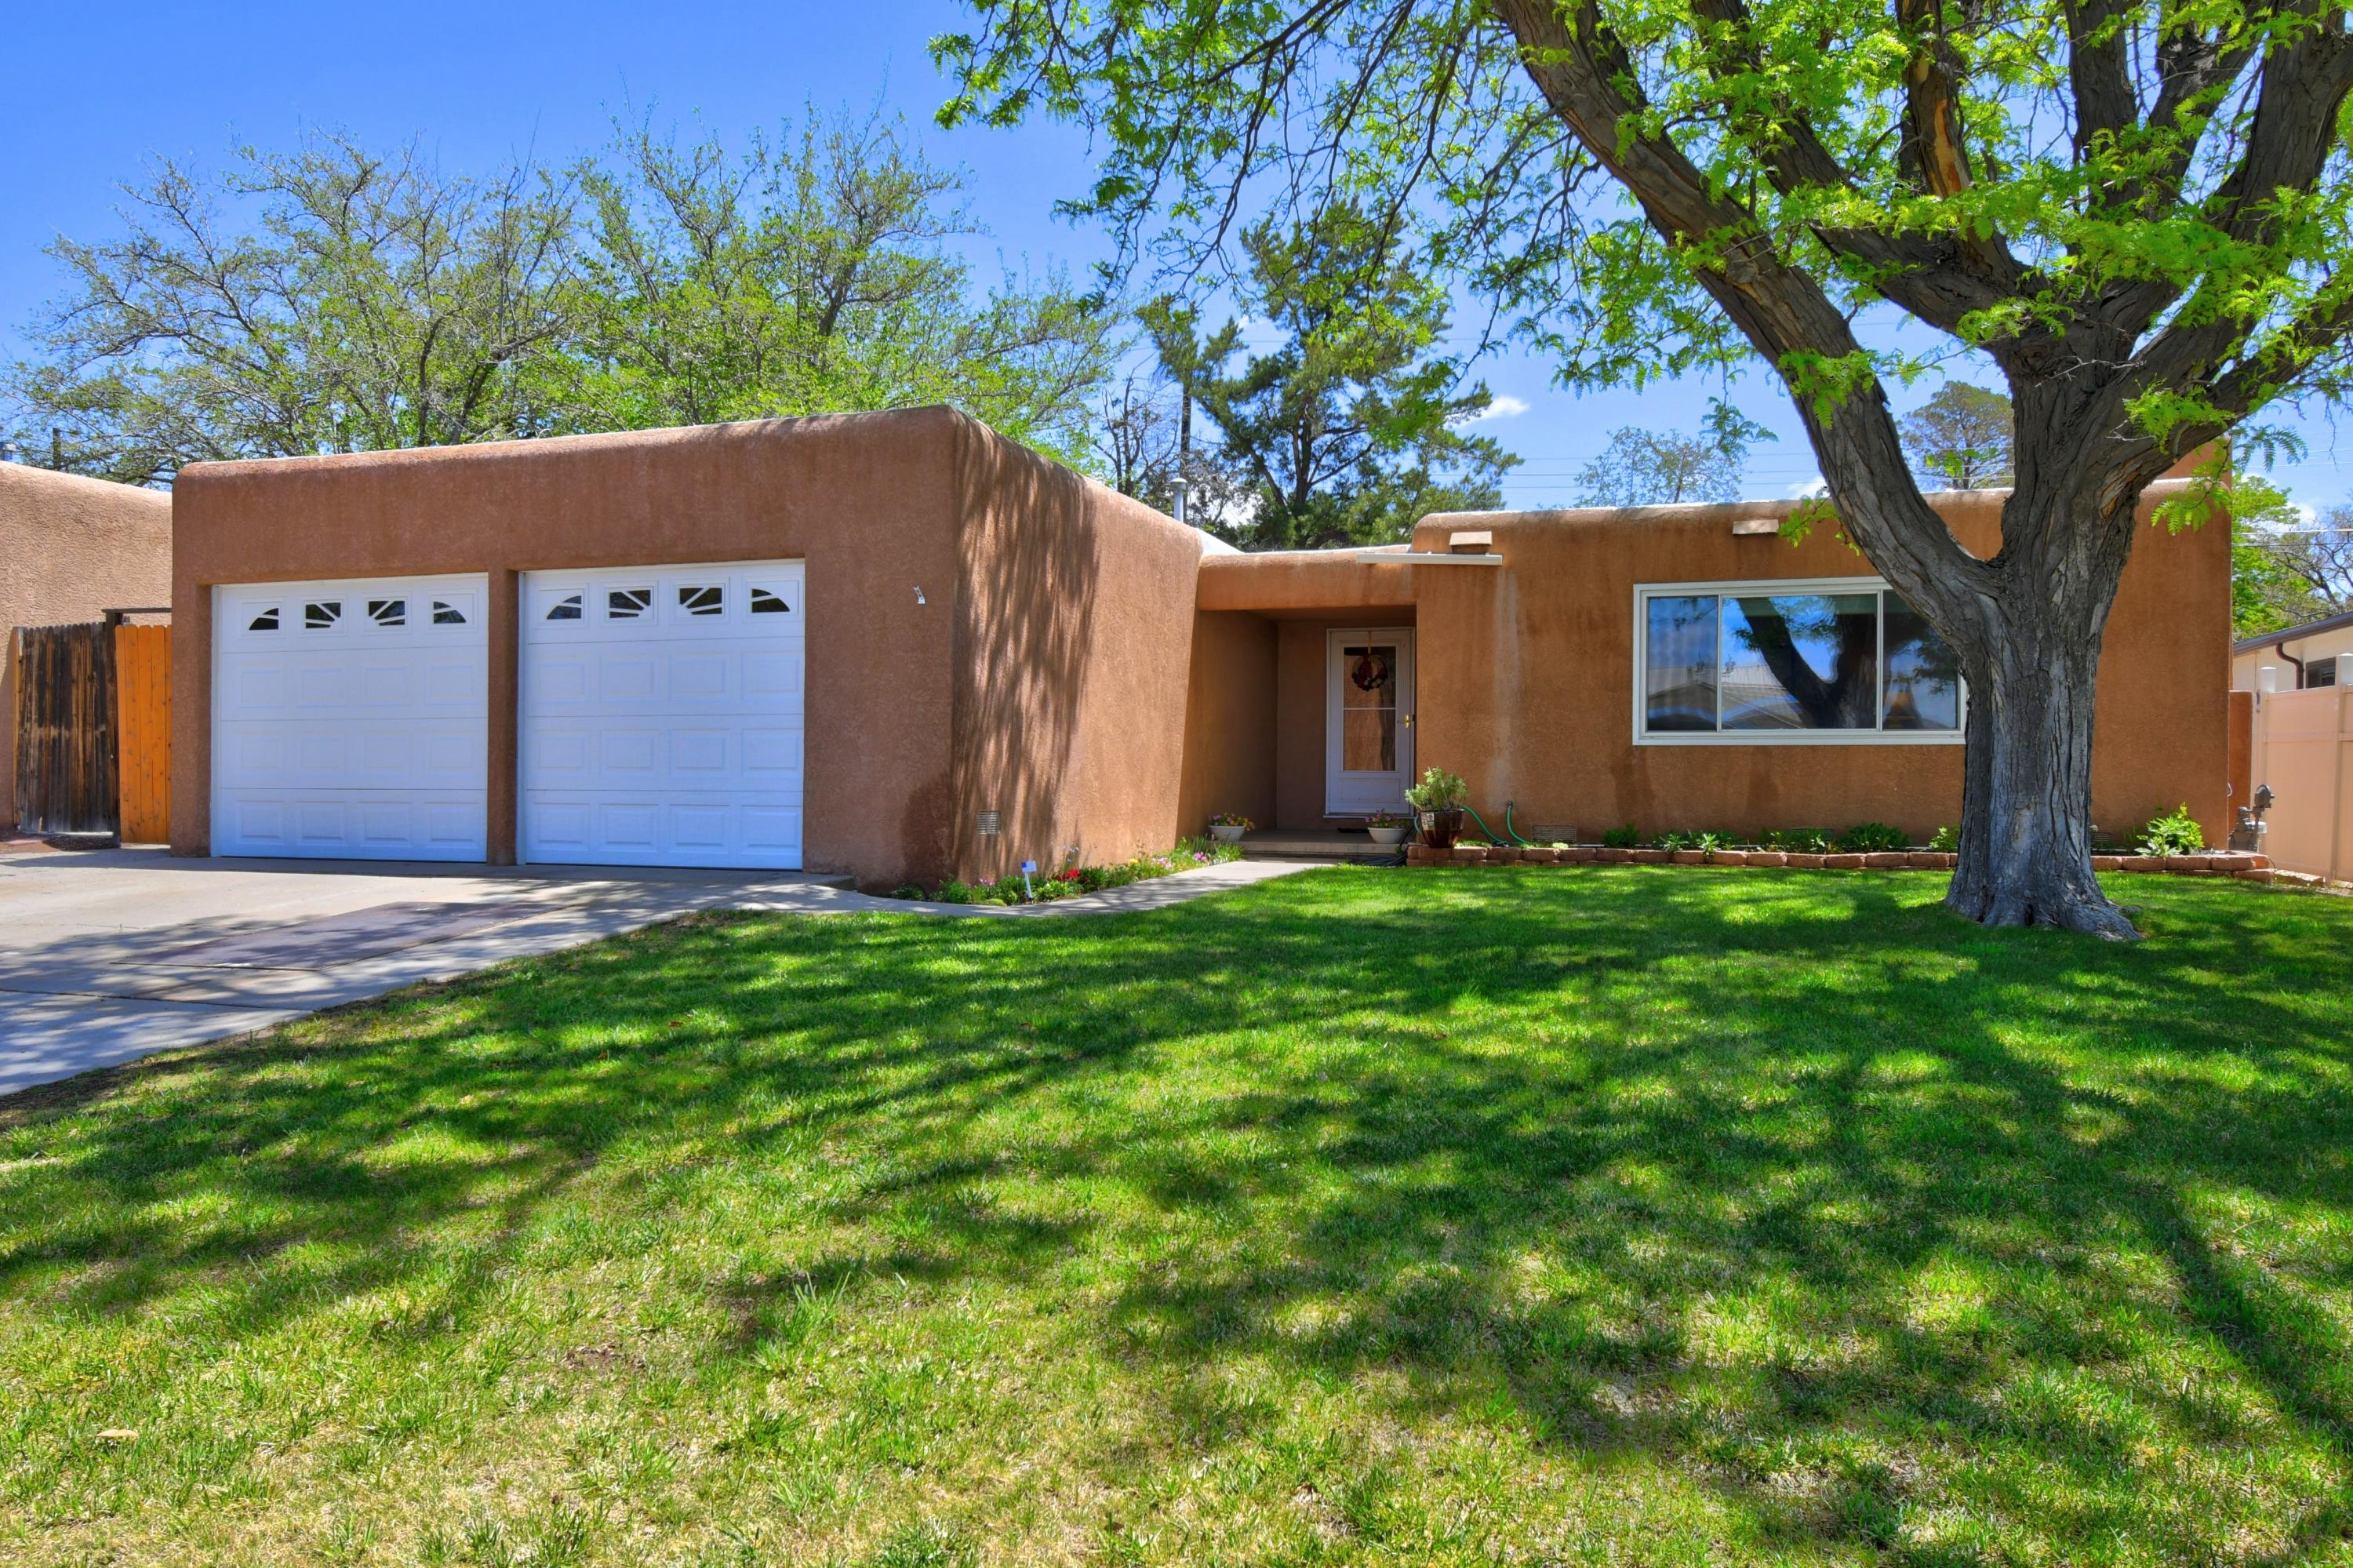 Beautiful single story home with an updated kitchen featuring granite countertops & a lovely custom backsplash. plus an island & soft close drawers & cabinets which offer storage galore. Matching appliances & newer gas stove (2020) Tile through out the entryway, kitchen and hallway. Two spacious living rooms. Double paned windows plus skylights bring light throughout the home. Tastefully updated bathrooms with tiled showers & newer vanities  All bedrooms feature remote controlled fans & built in drawers Step outside into a large covered patio perfect for entertaining. And a newer shed (2020) in the backyard for extra storage. Rheem furnace &  MasterCool  AC unit. The carpet in the living room & bedrooms have hardwood floors underneath.  Don't miss this meticulously maintained home!